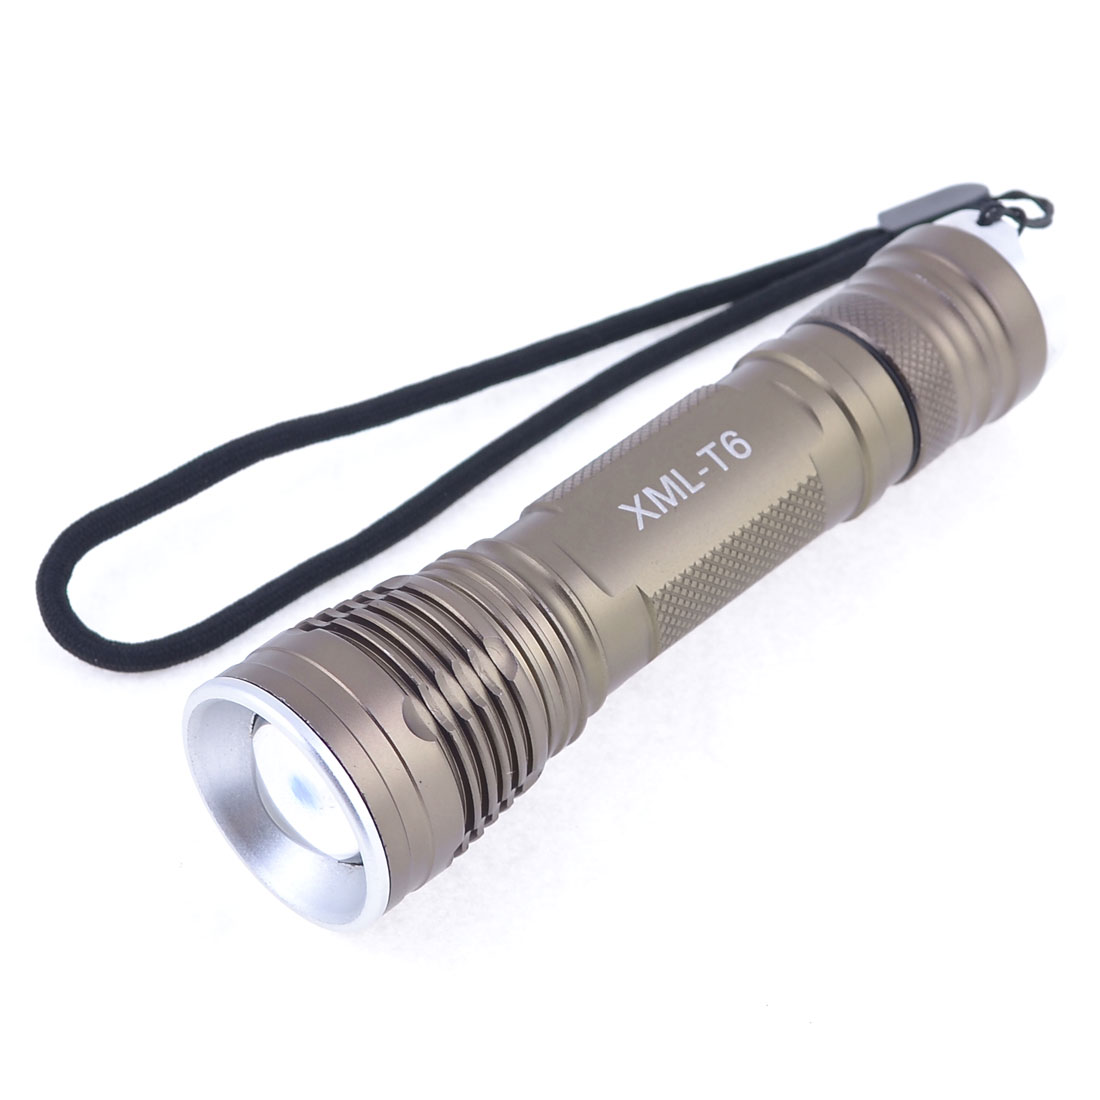 "Nonslip Handle 250LM LED White Light Camping Flashlight Coffee Color 4.7"" Long"